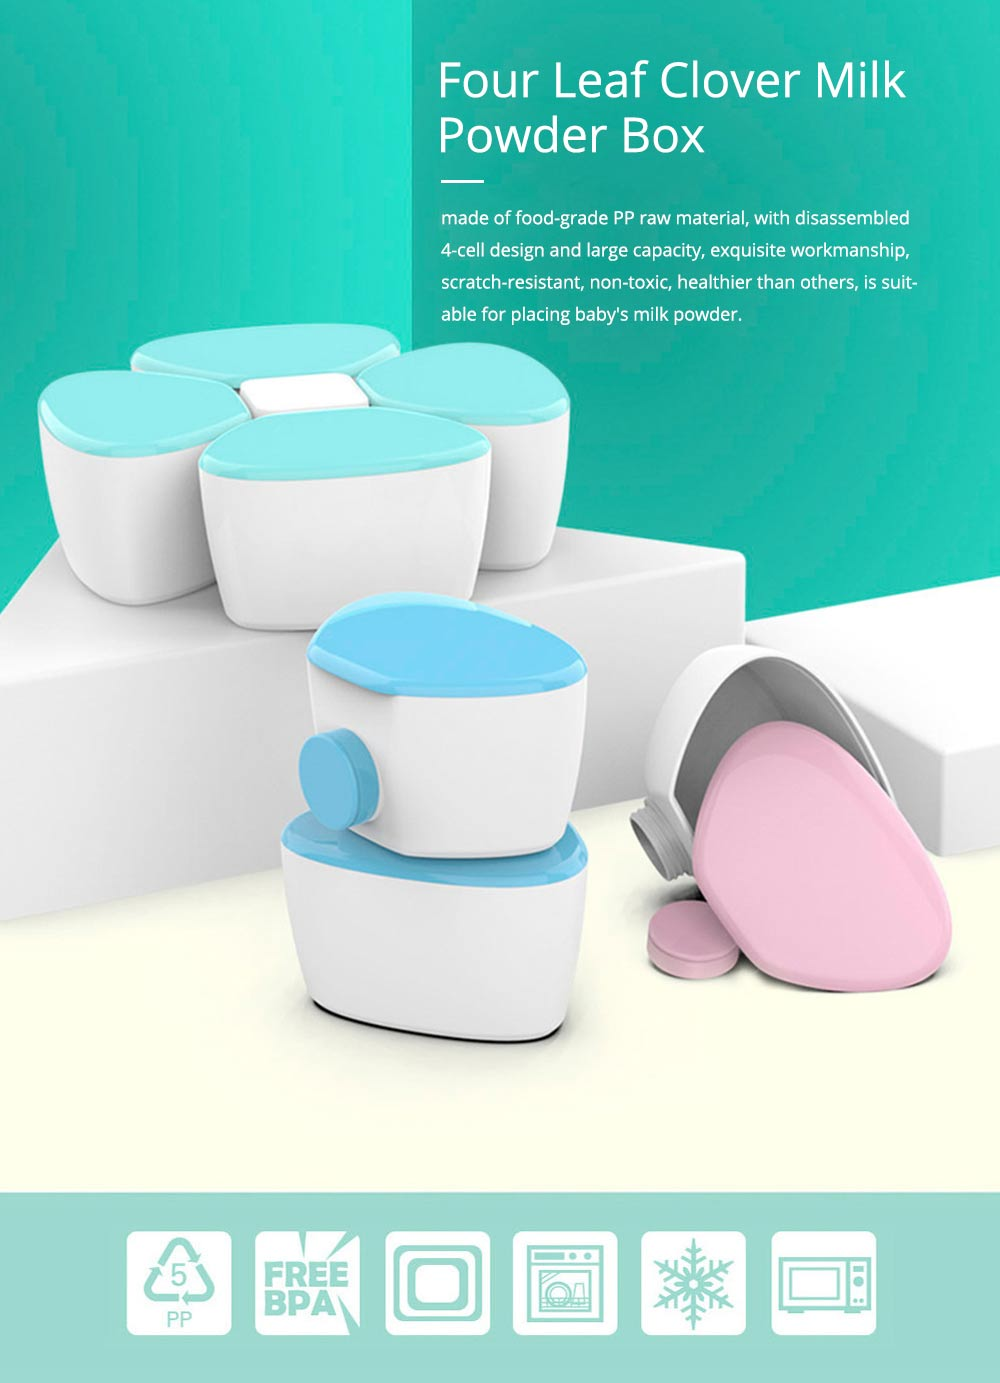 Four Leaf Clover Milk Powder Snack Box, Portable Large Capacity Baby Feeding Box for Food Supplement 0